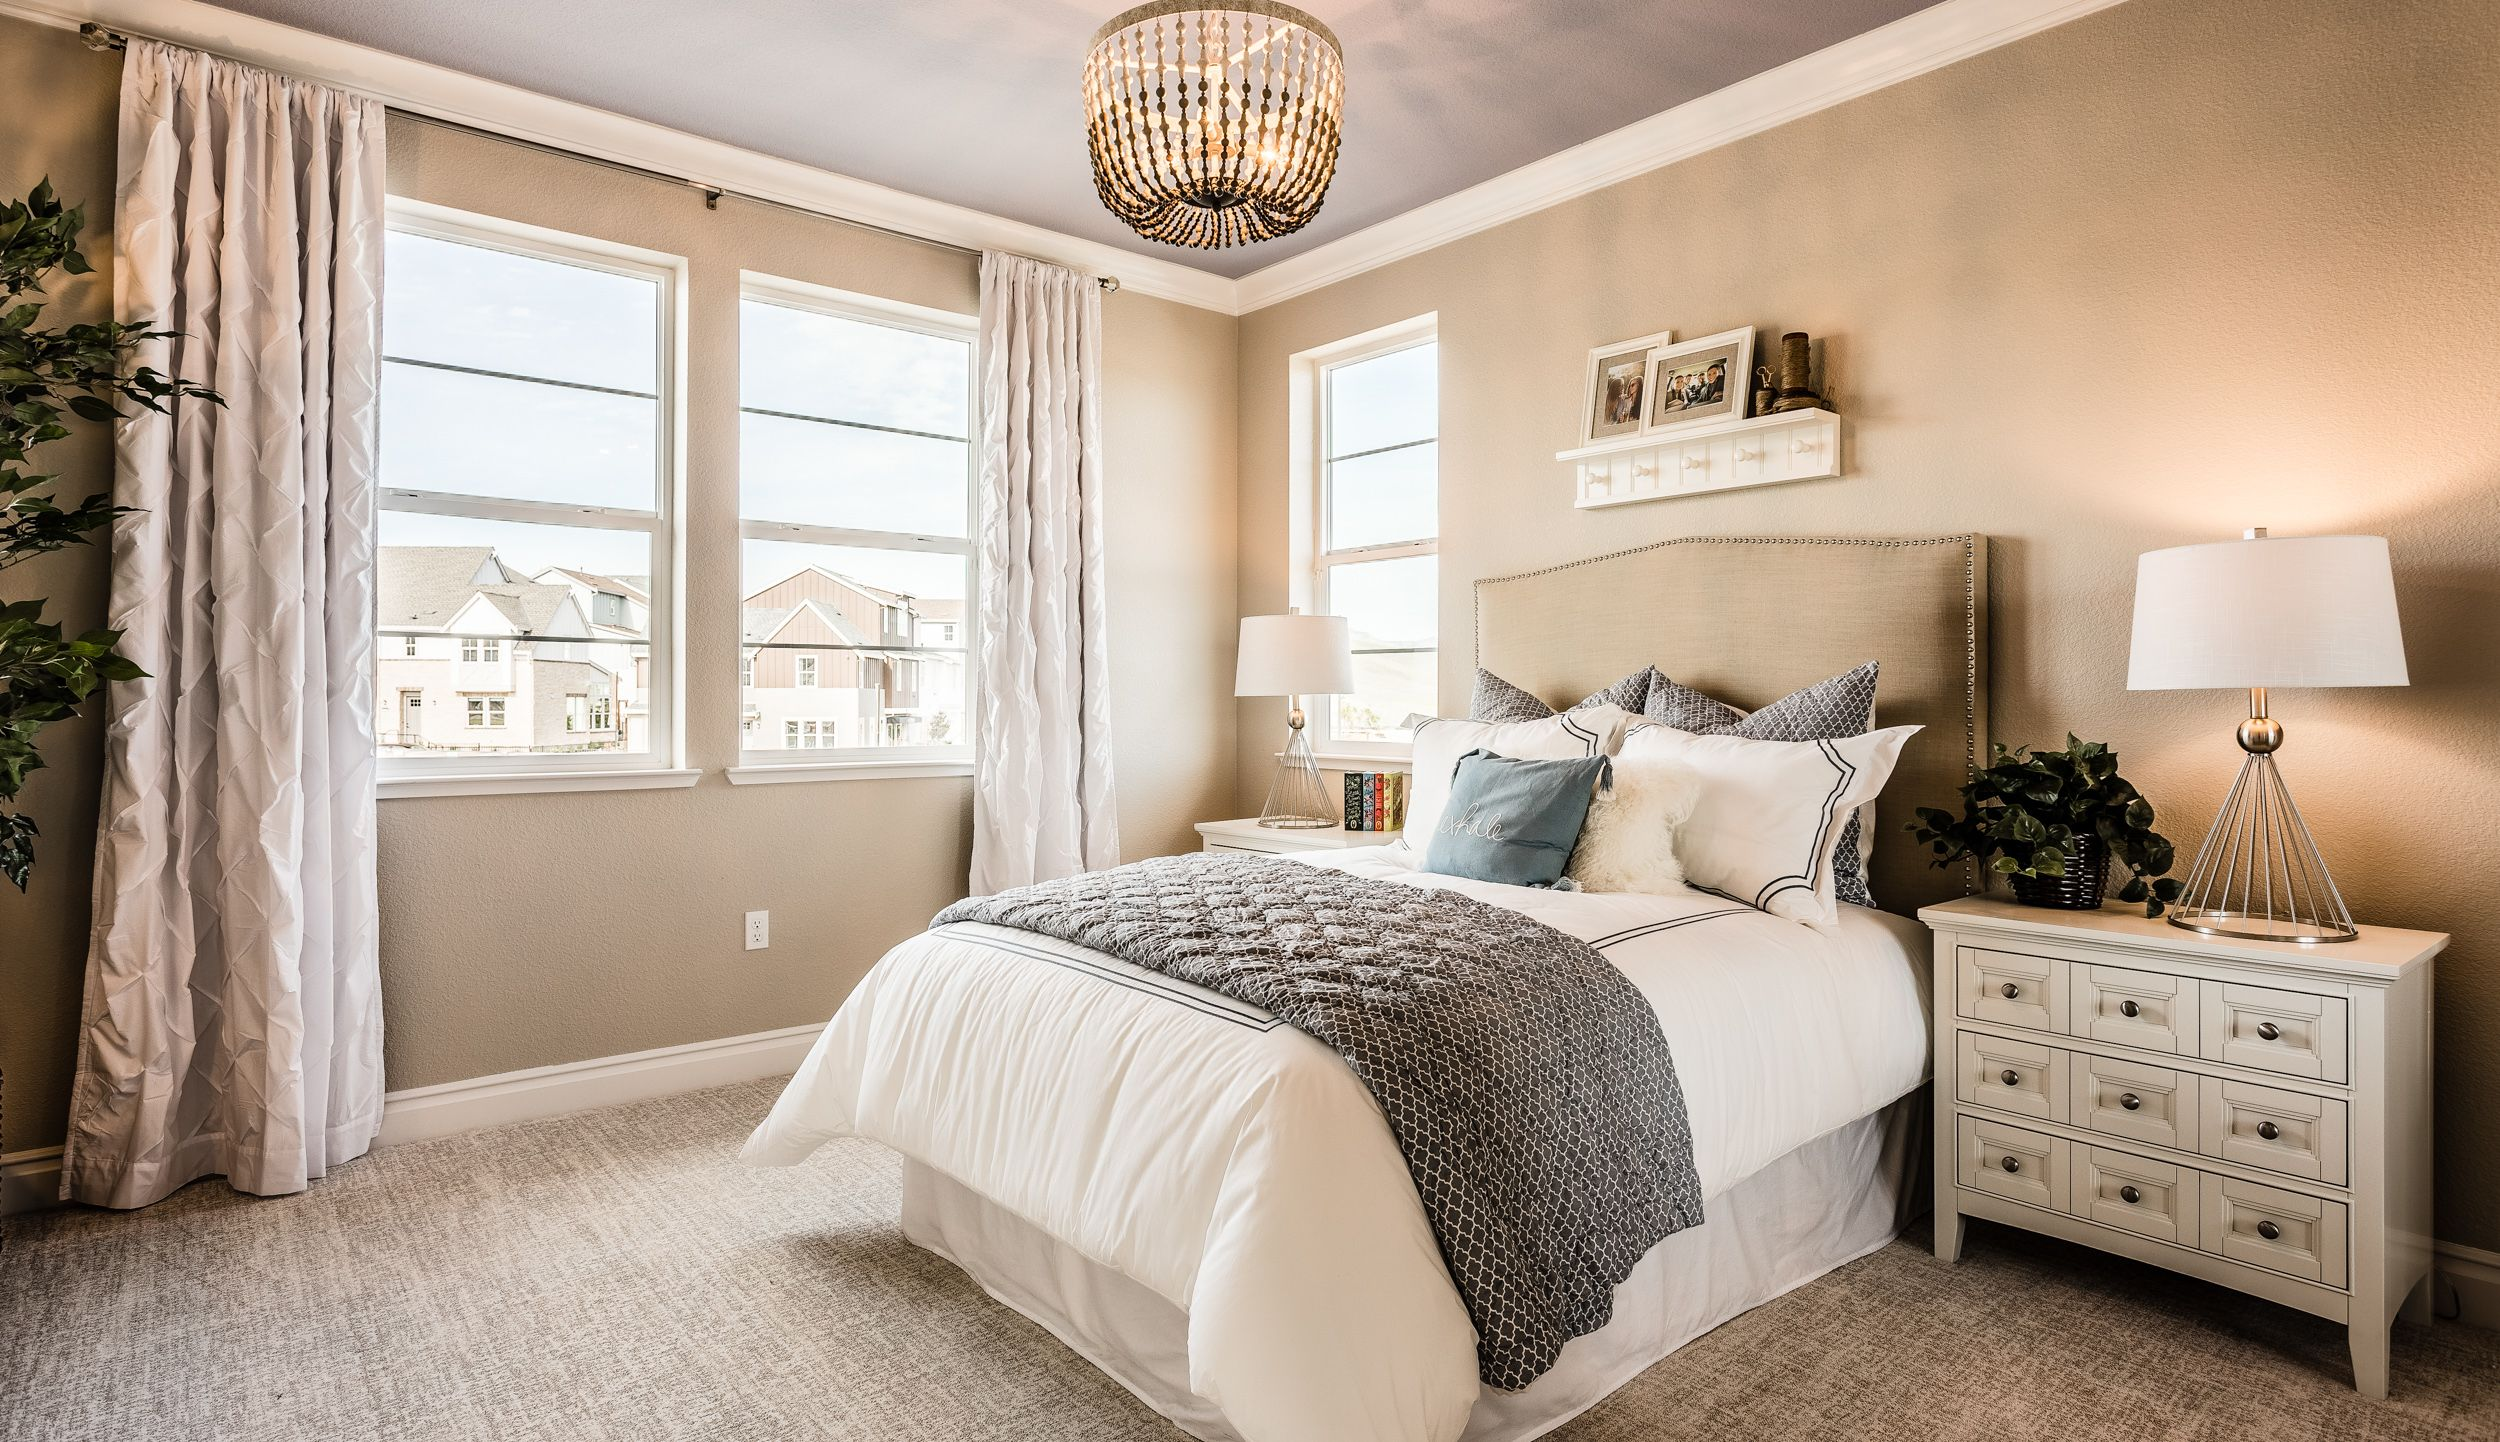 Come Home To Your Tranquil Retreat Bedroom Guestsuite Archdaily Archilovers Luxuryrealestate Decor Bayarea Bedroom Design Luxury Homes Home